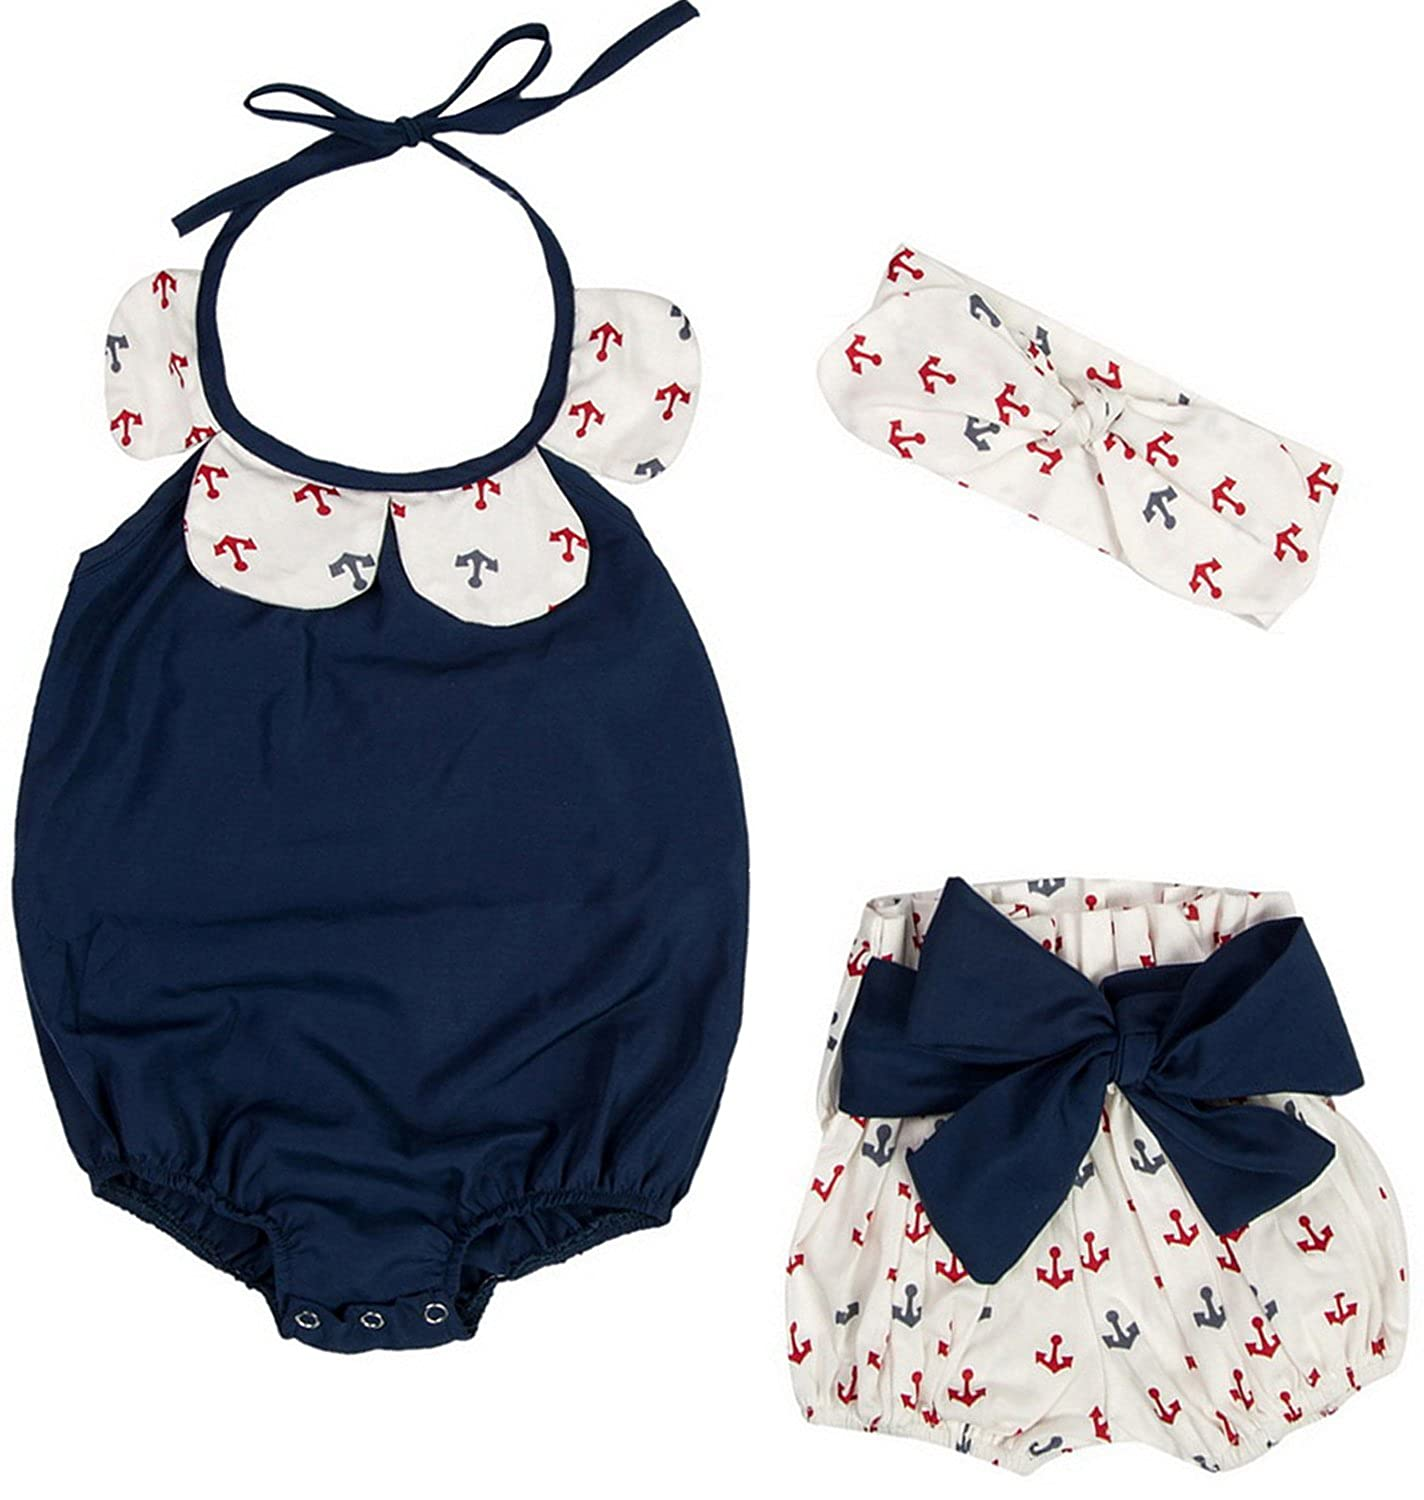 bd168e589956 Amazon.com  Baby Girl Clothes Infant Romper Bodysuit Toddler ...